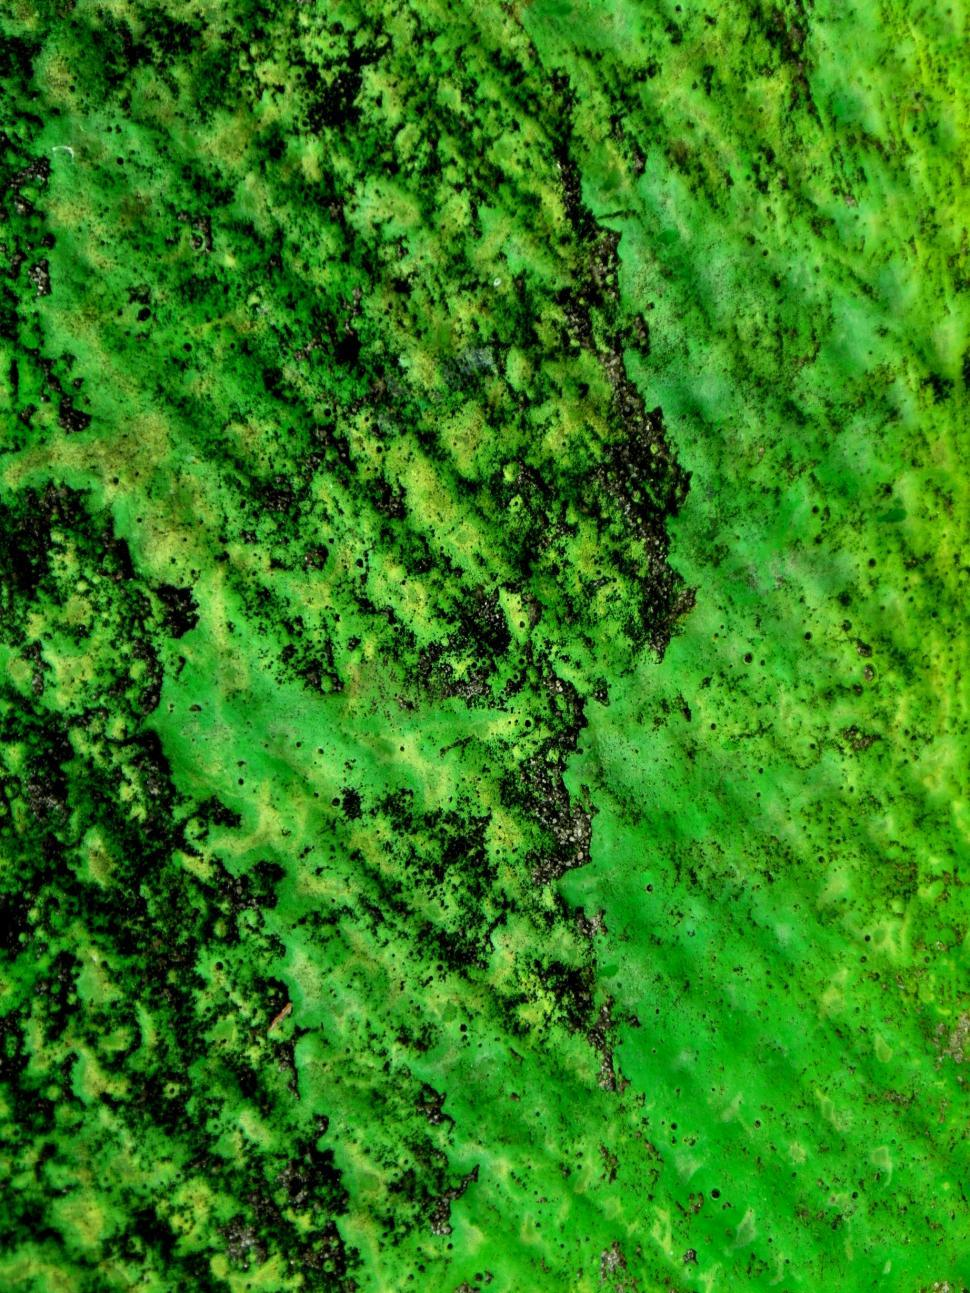 Download Free Stock HD Photo of Green Grunge Texture Online